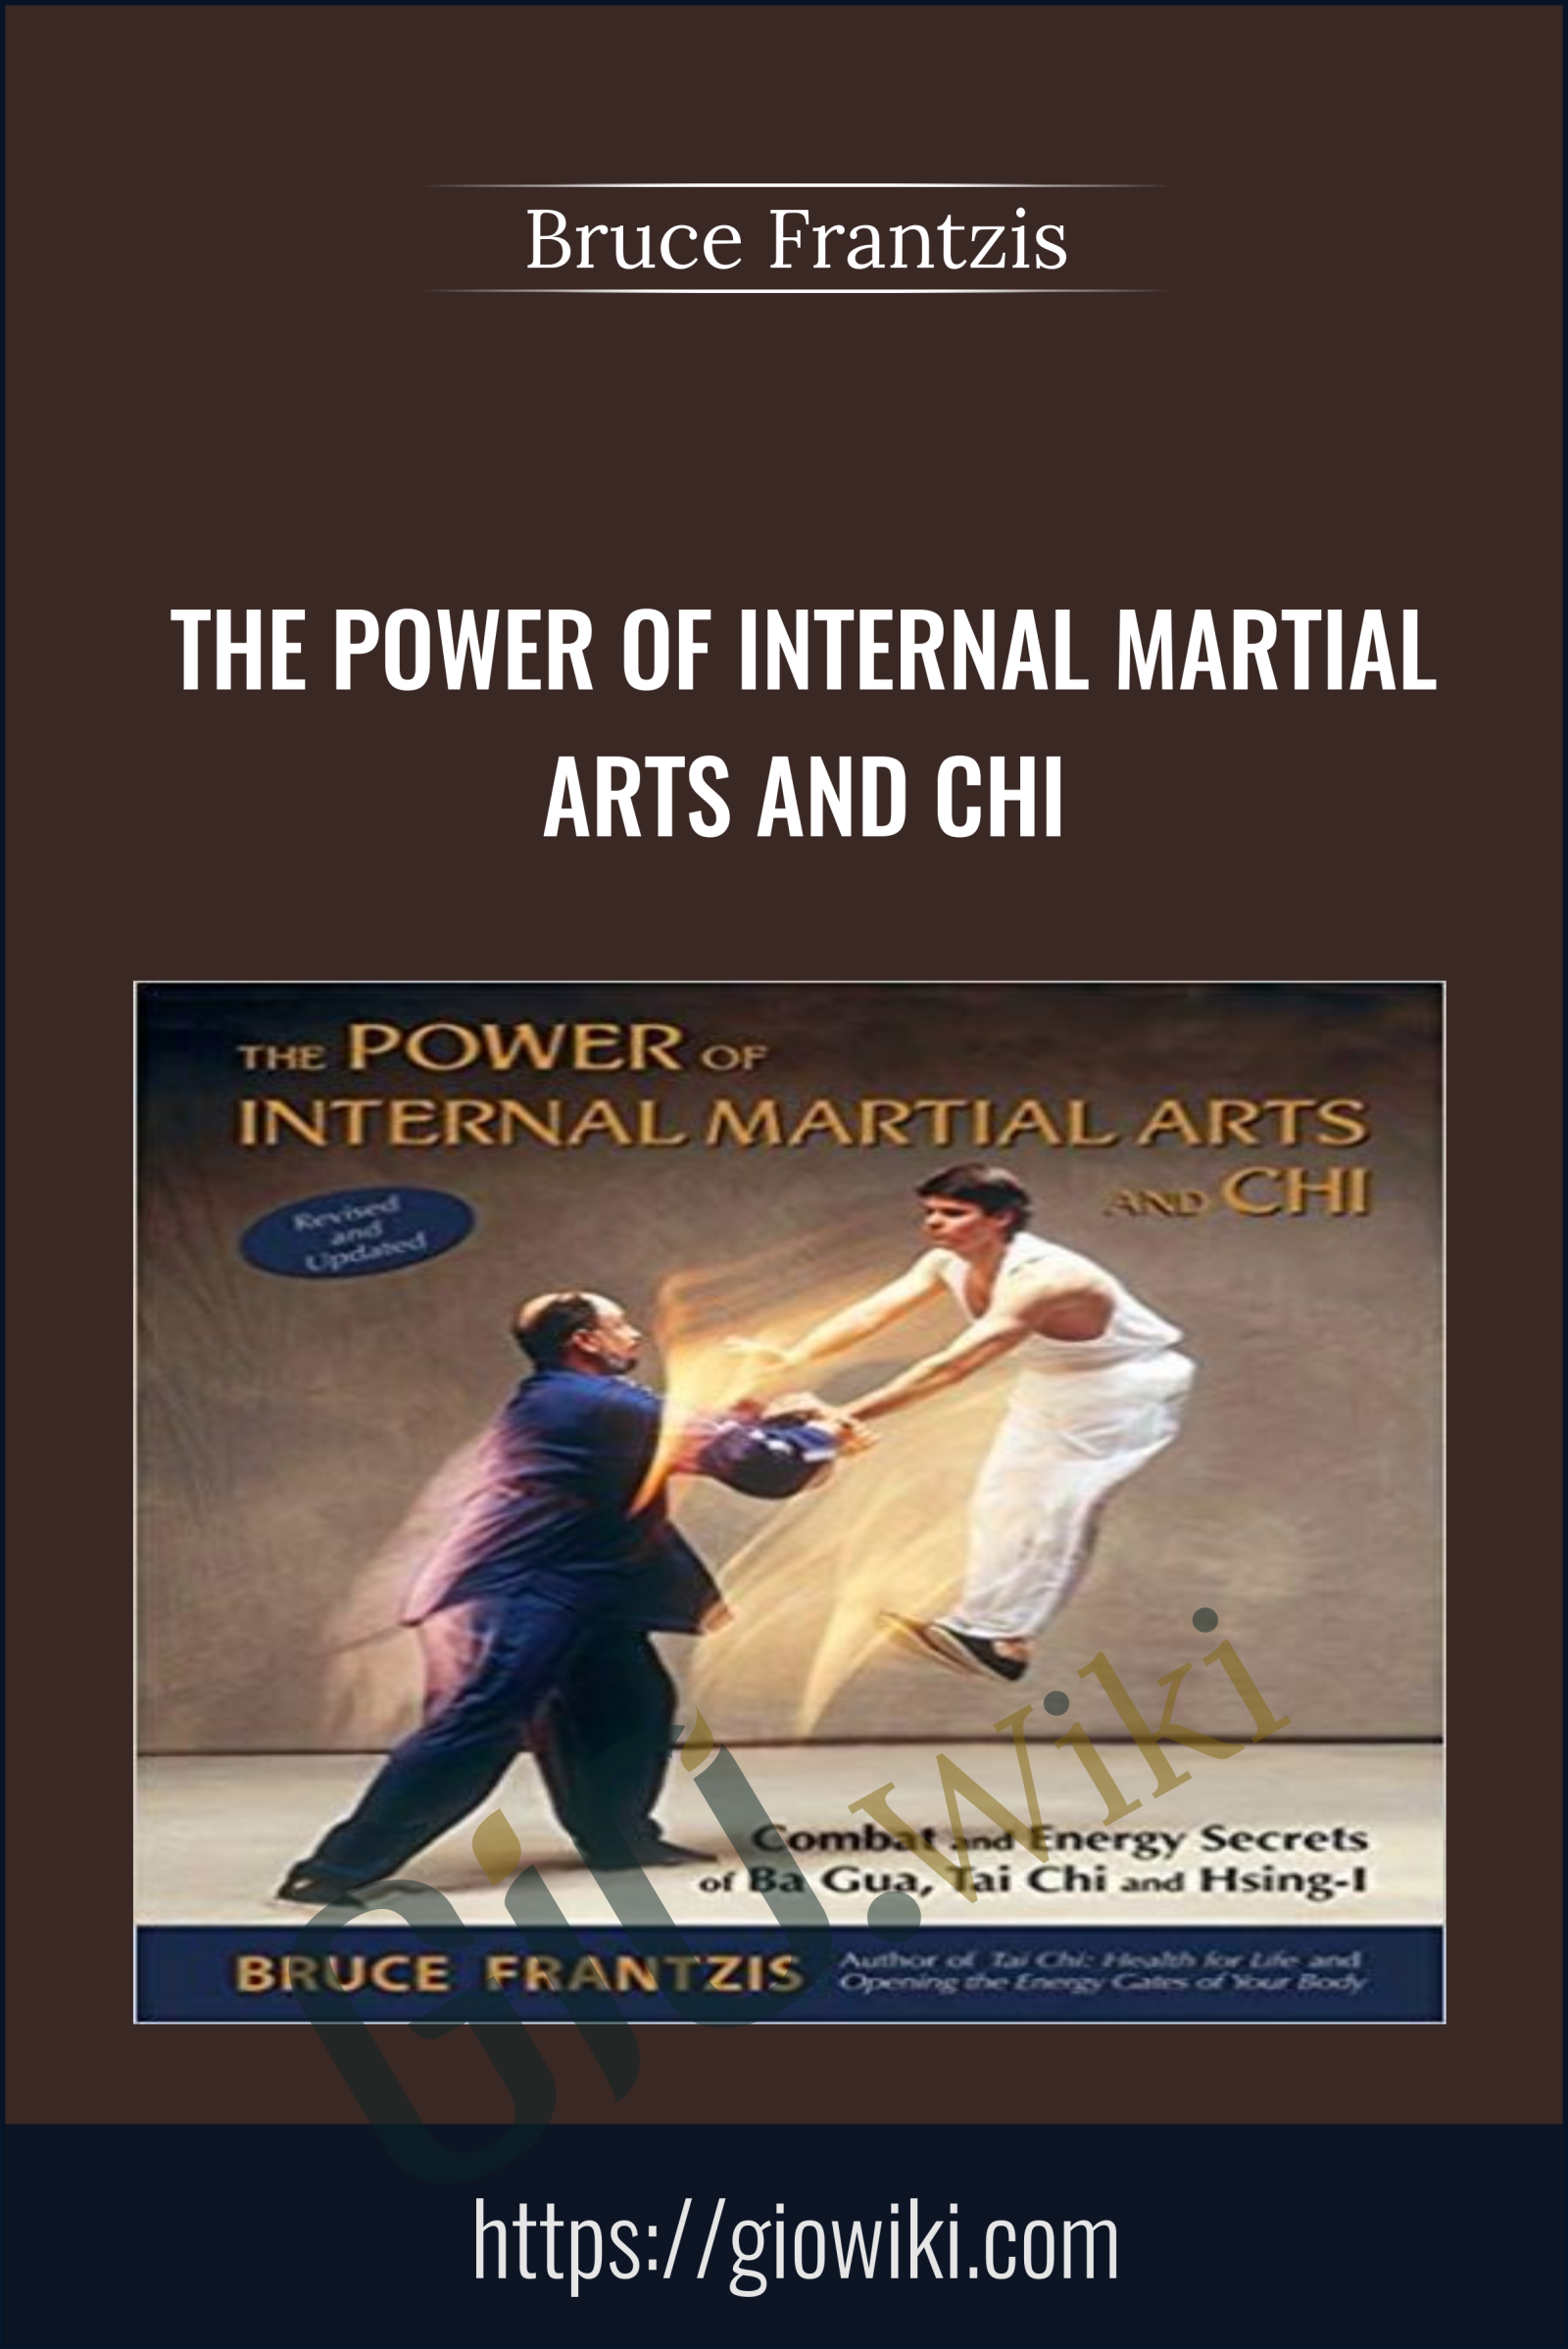 The Power of Internal Martial Arts and Chi - Bruce Frantzis